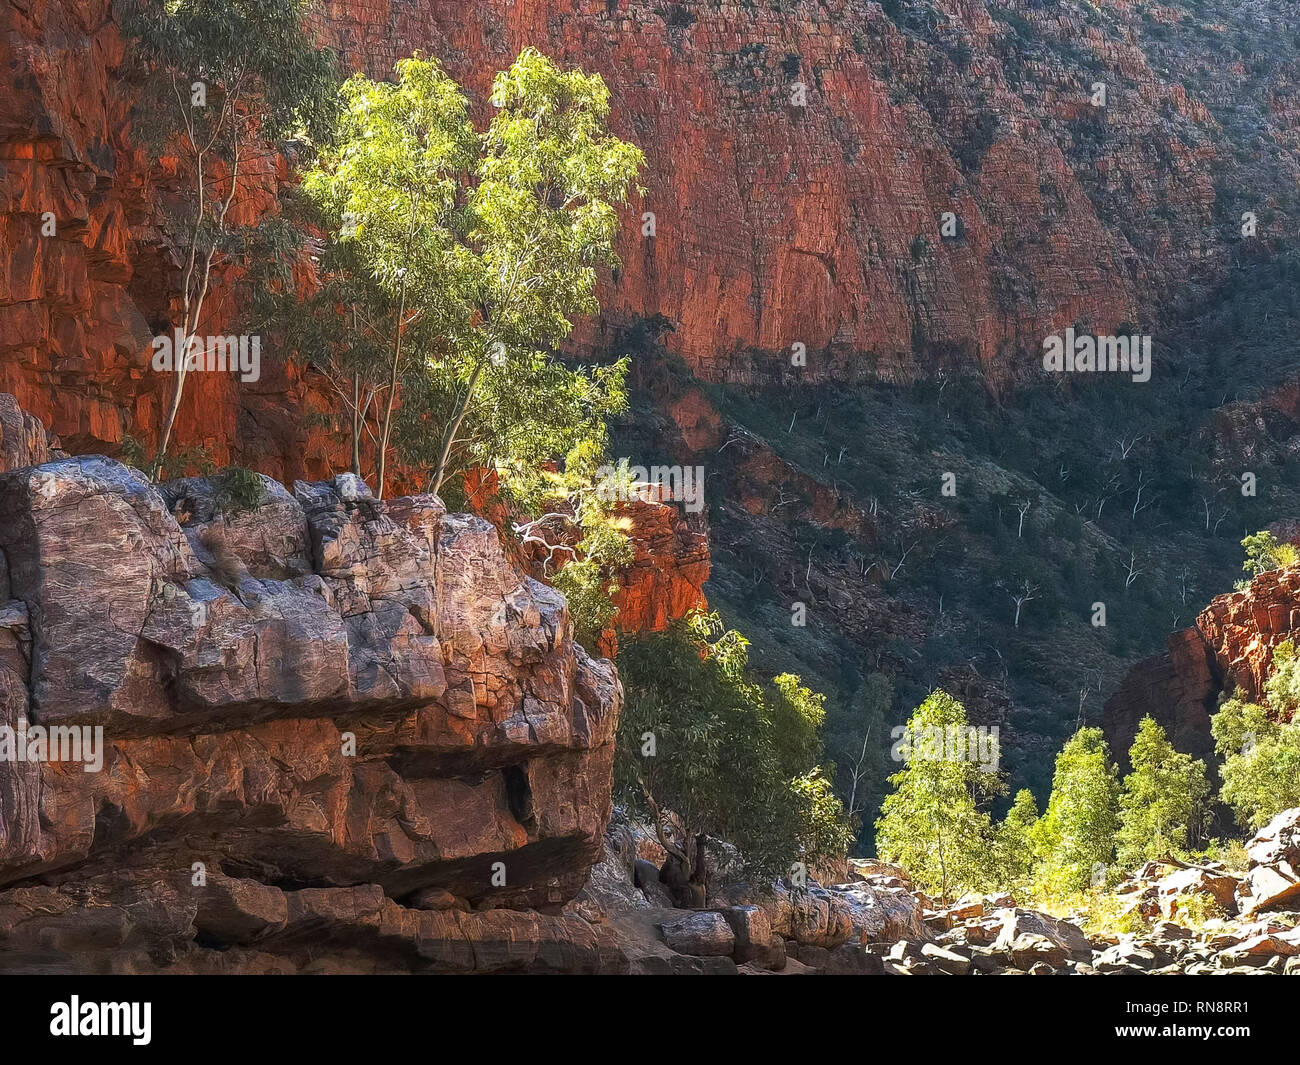 view of the gorge walls at ormiston gorge in the west macdonnell ranges - Stock Image